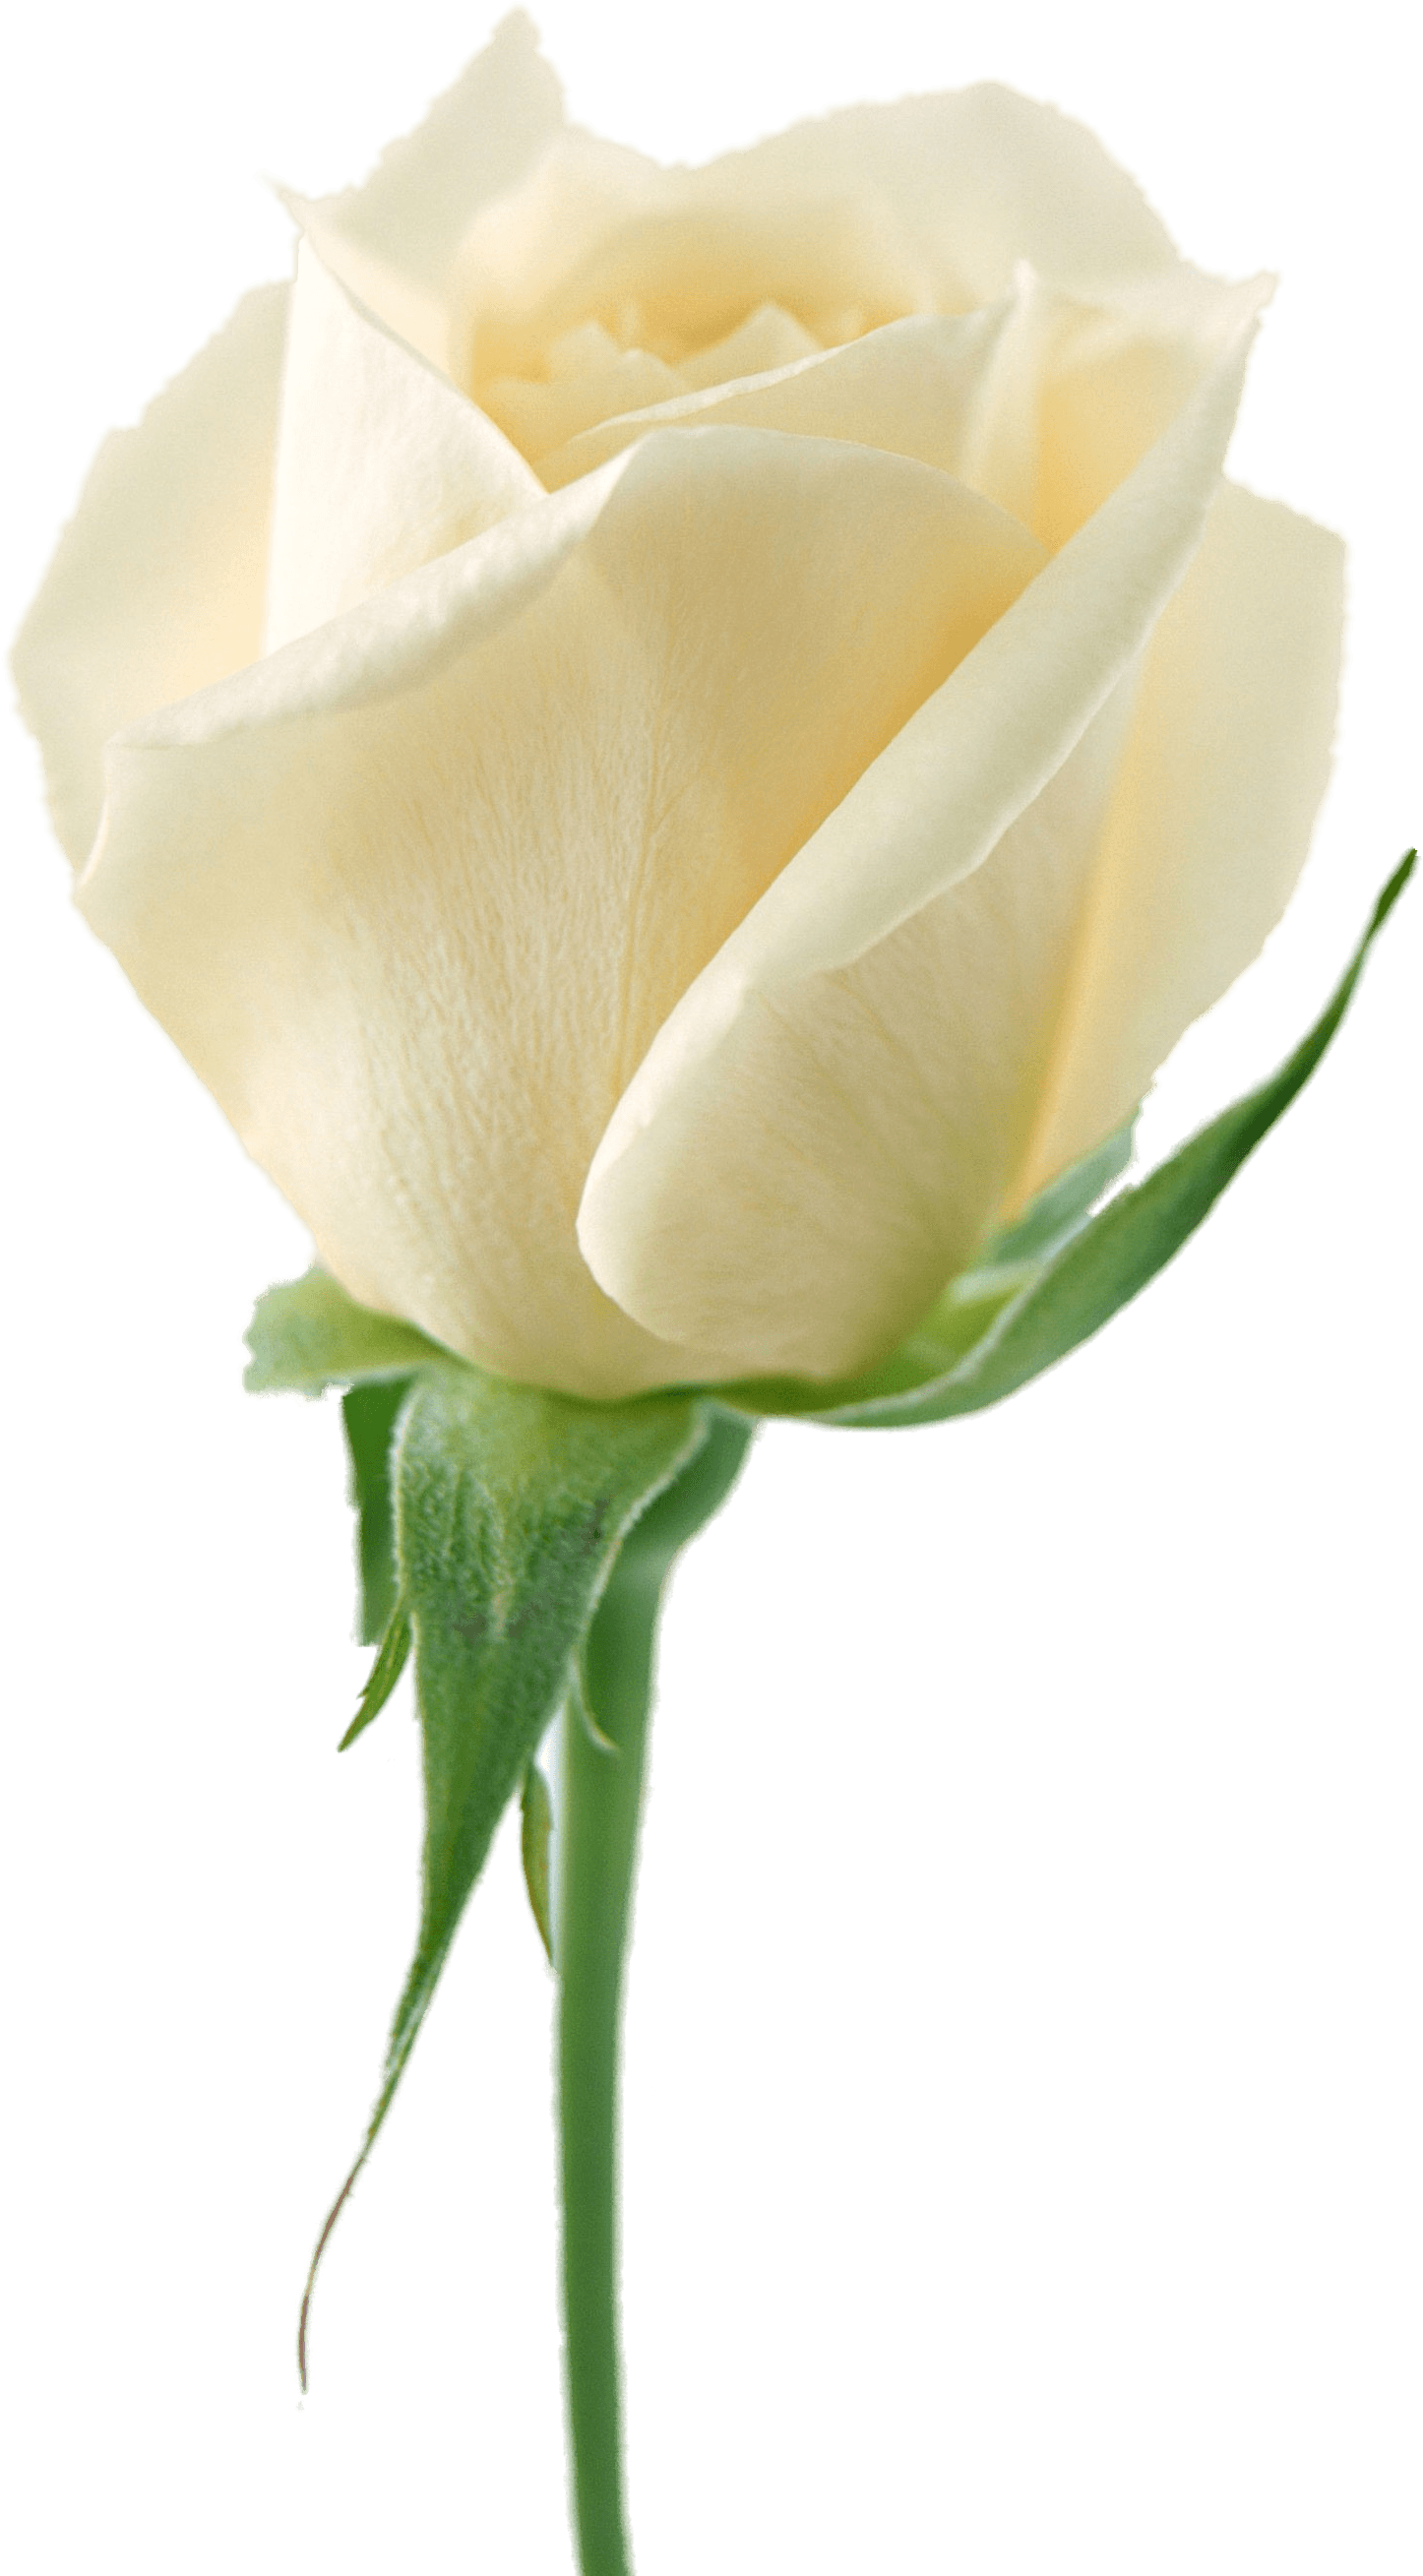 download white rose png image flower white rose png #19017